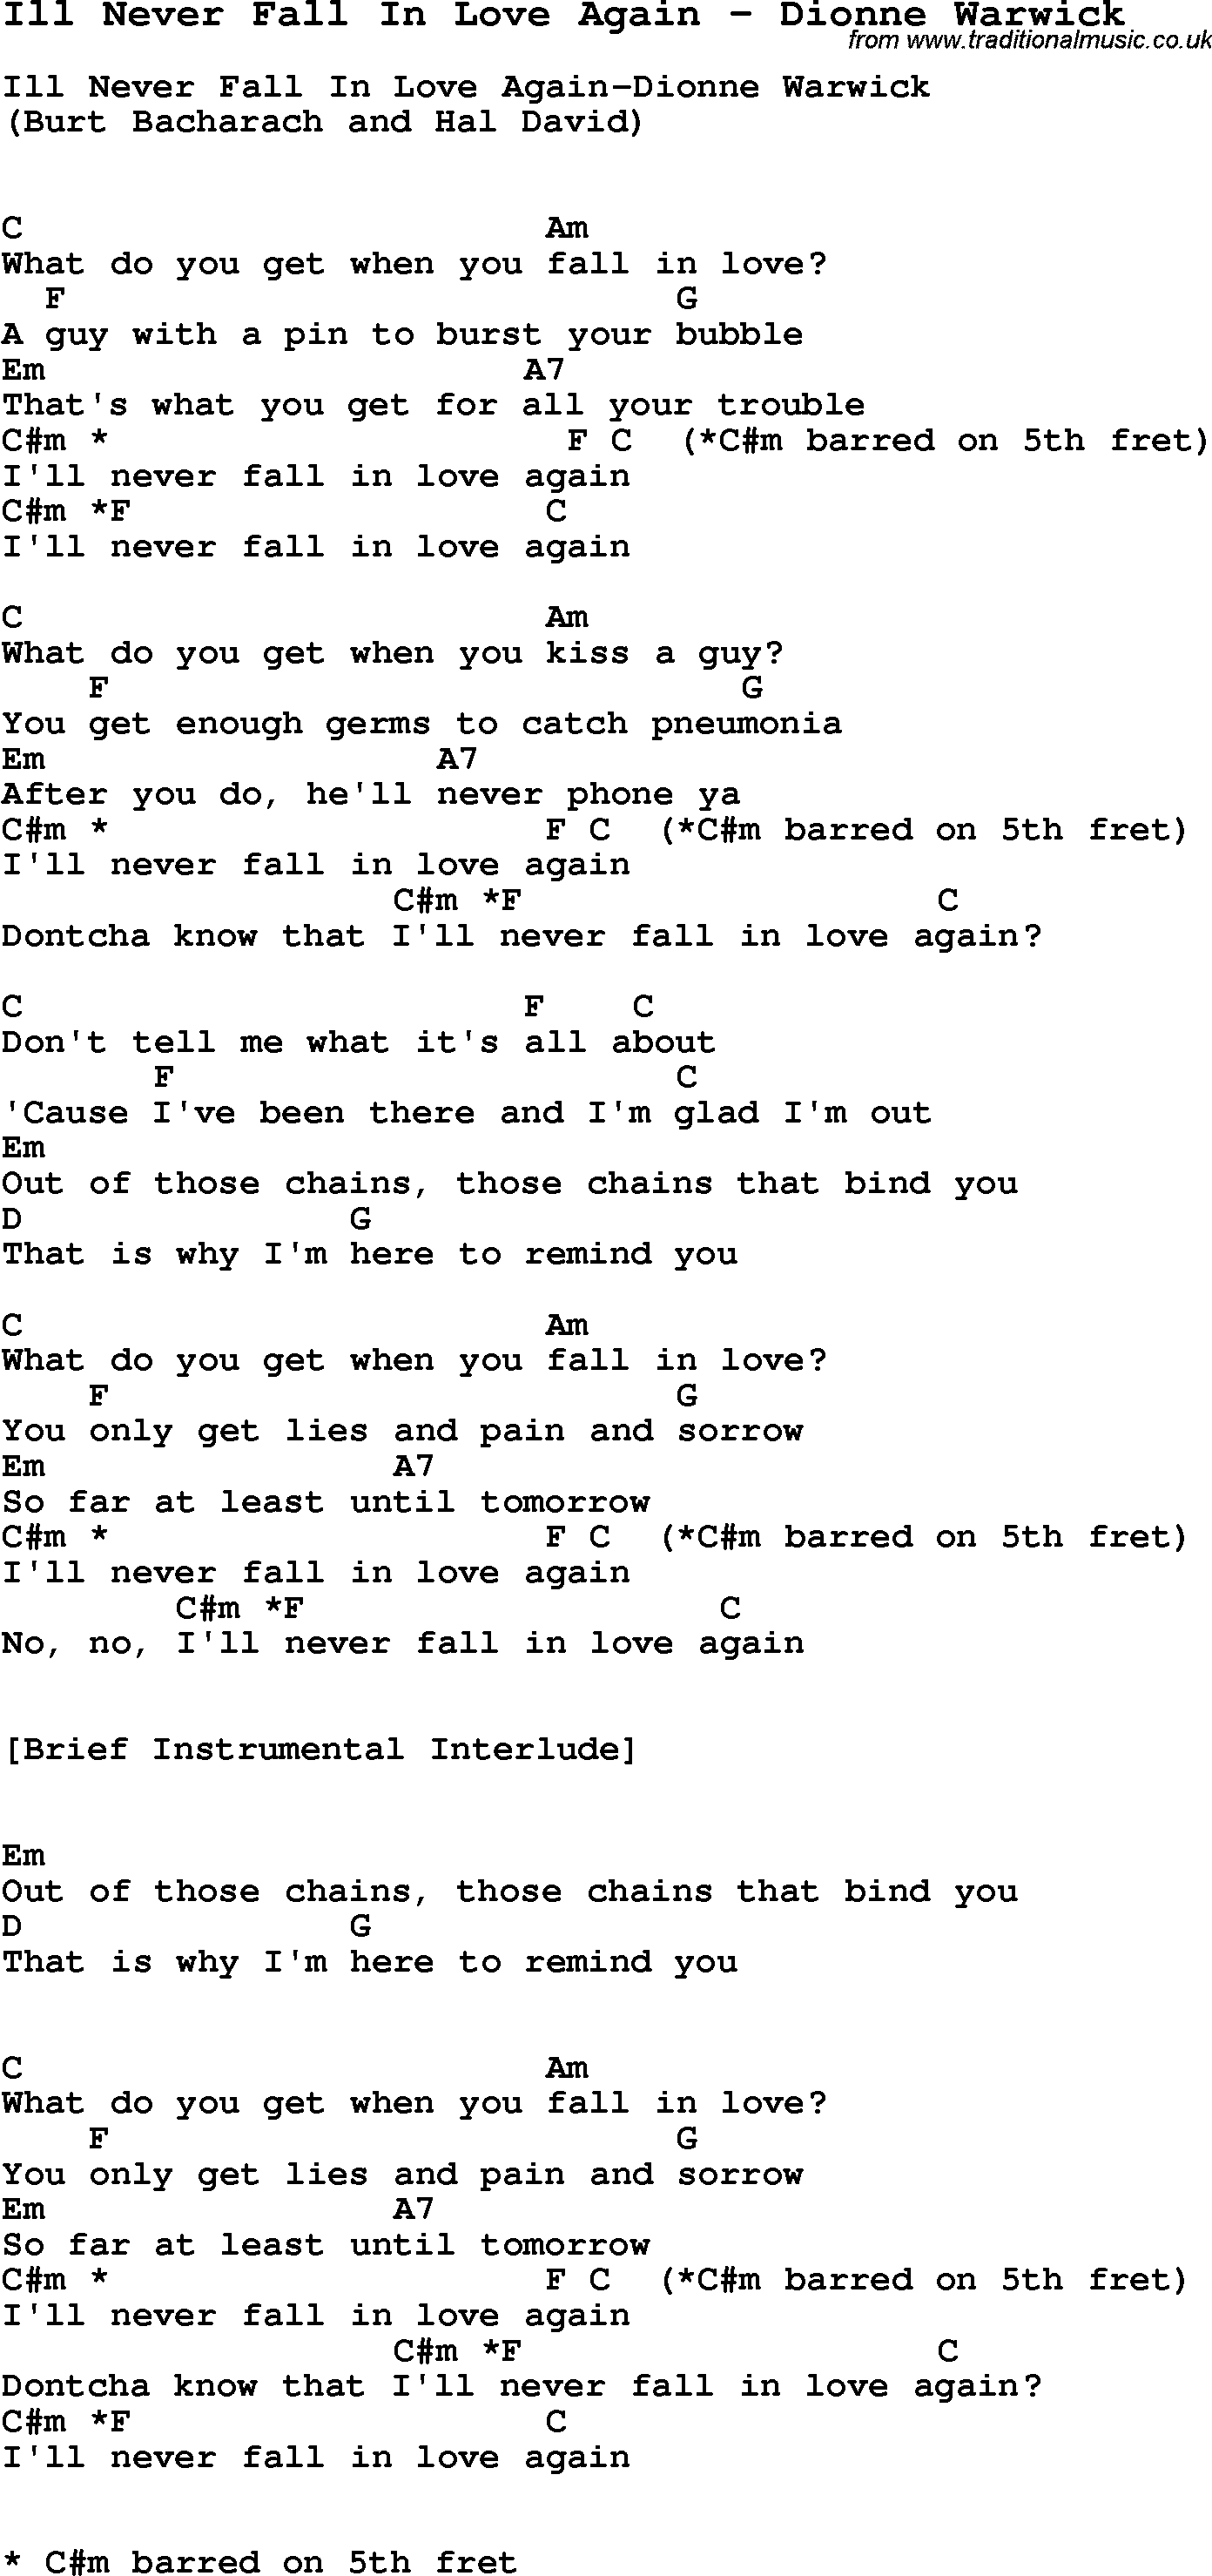 Song ill never fall in love again by dionne warwick with lyrics song ill never fall in love again by dionne warwick song lyric for vocal performance plus accompaniment chords for ukulele guitar banjo etc hexwebz Images